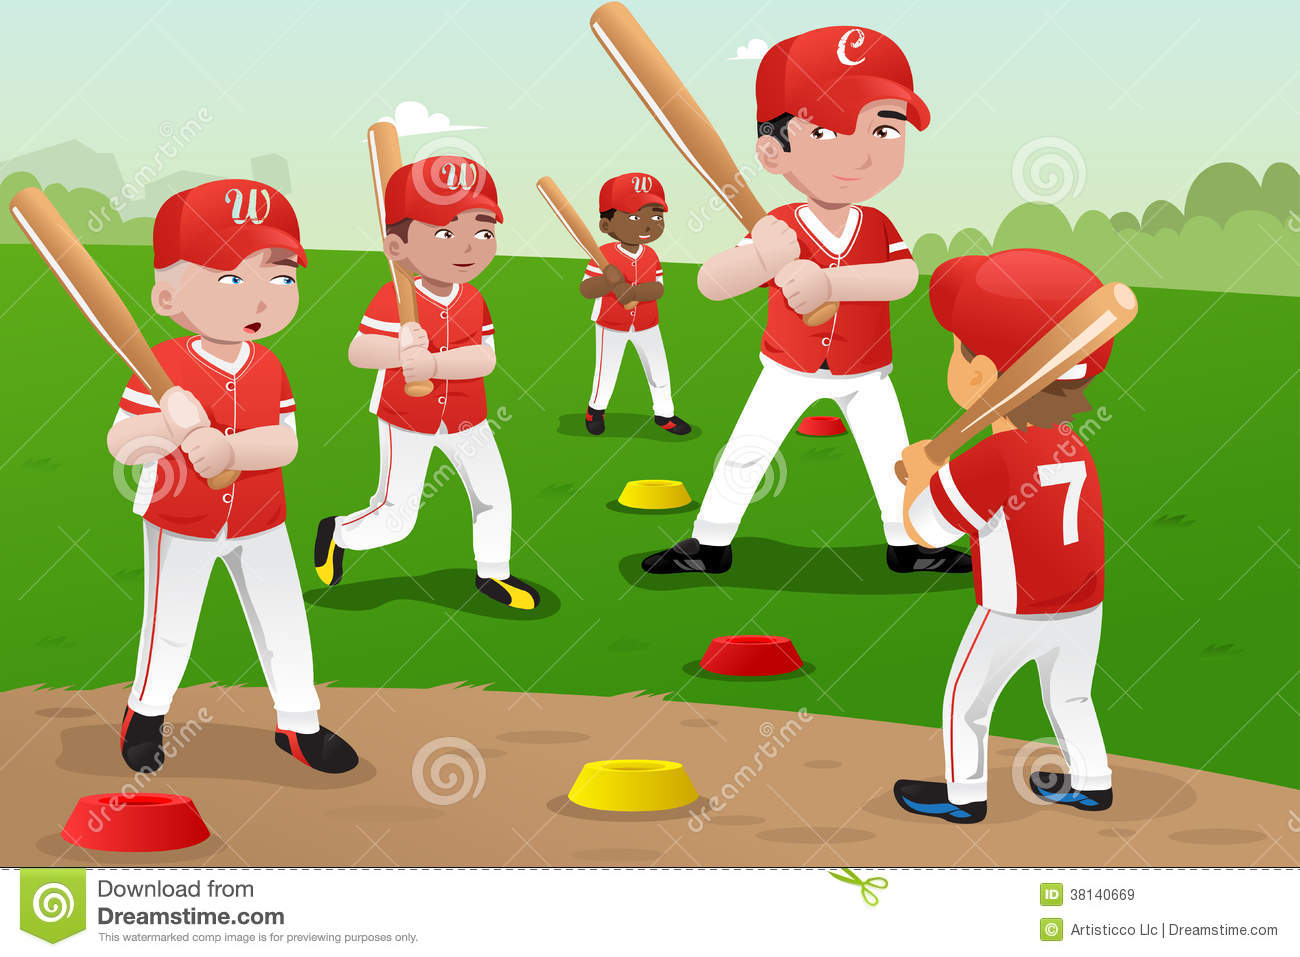 Kids In Baseball Practice Royalty Free Stock Images - Image: 38140669